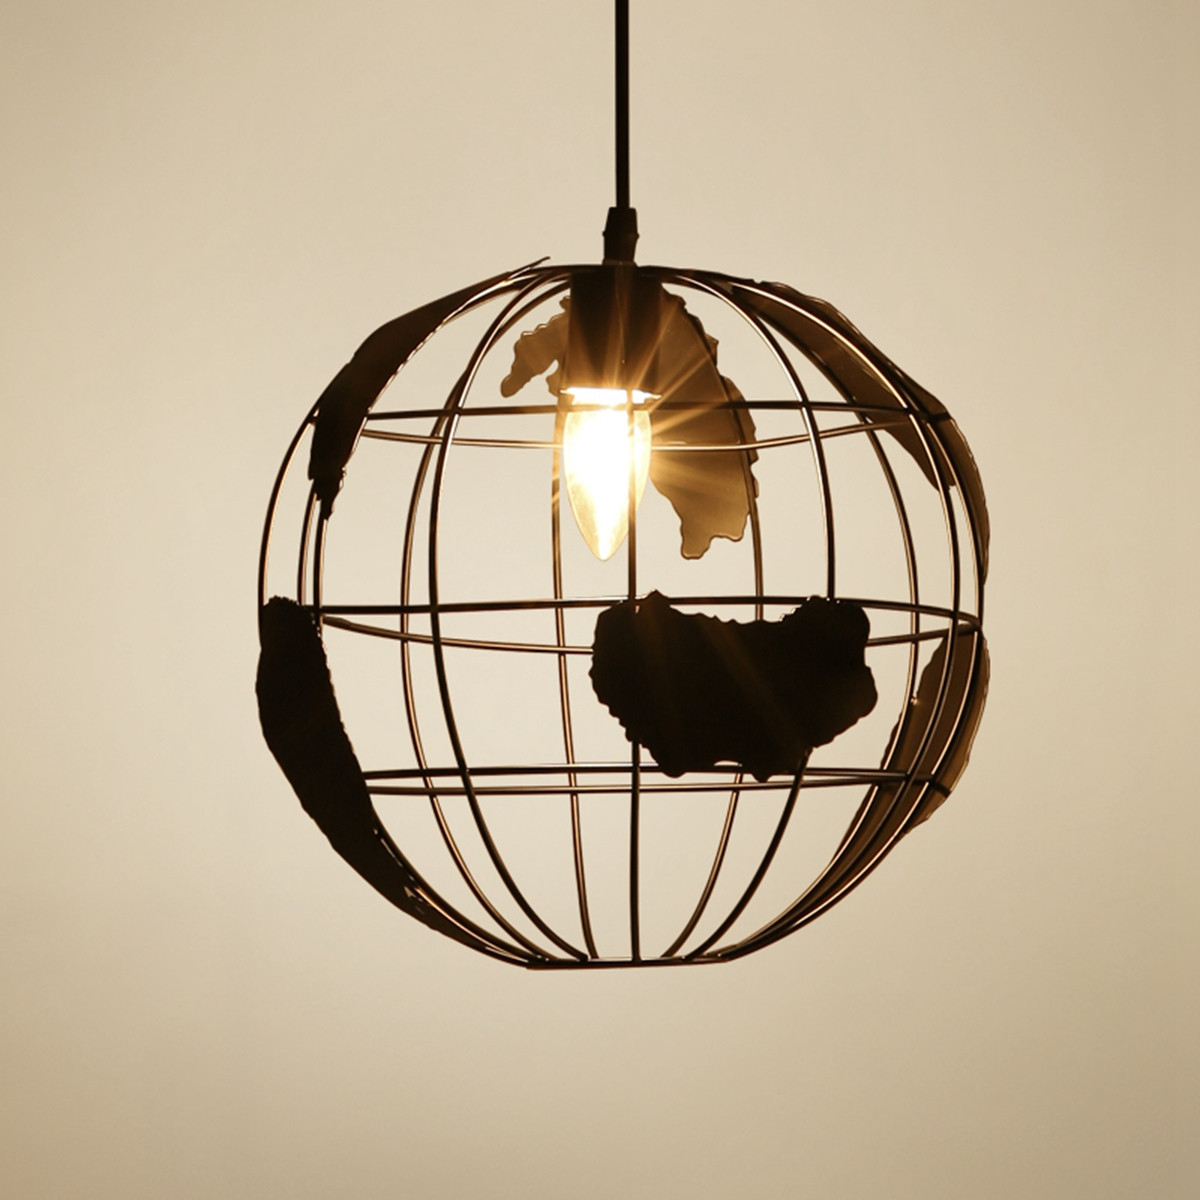 Vintage Globe Earth Shaped Ceiling Lamp E27 Bulb Hanging Pendant Light Plate Restaurant Coffee Shop Indoor Lighting Decor<br>